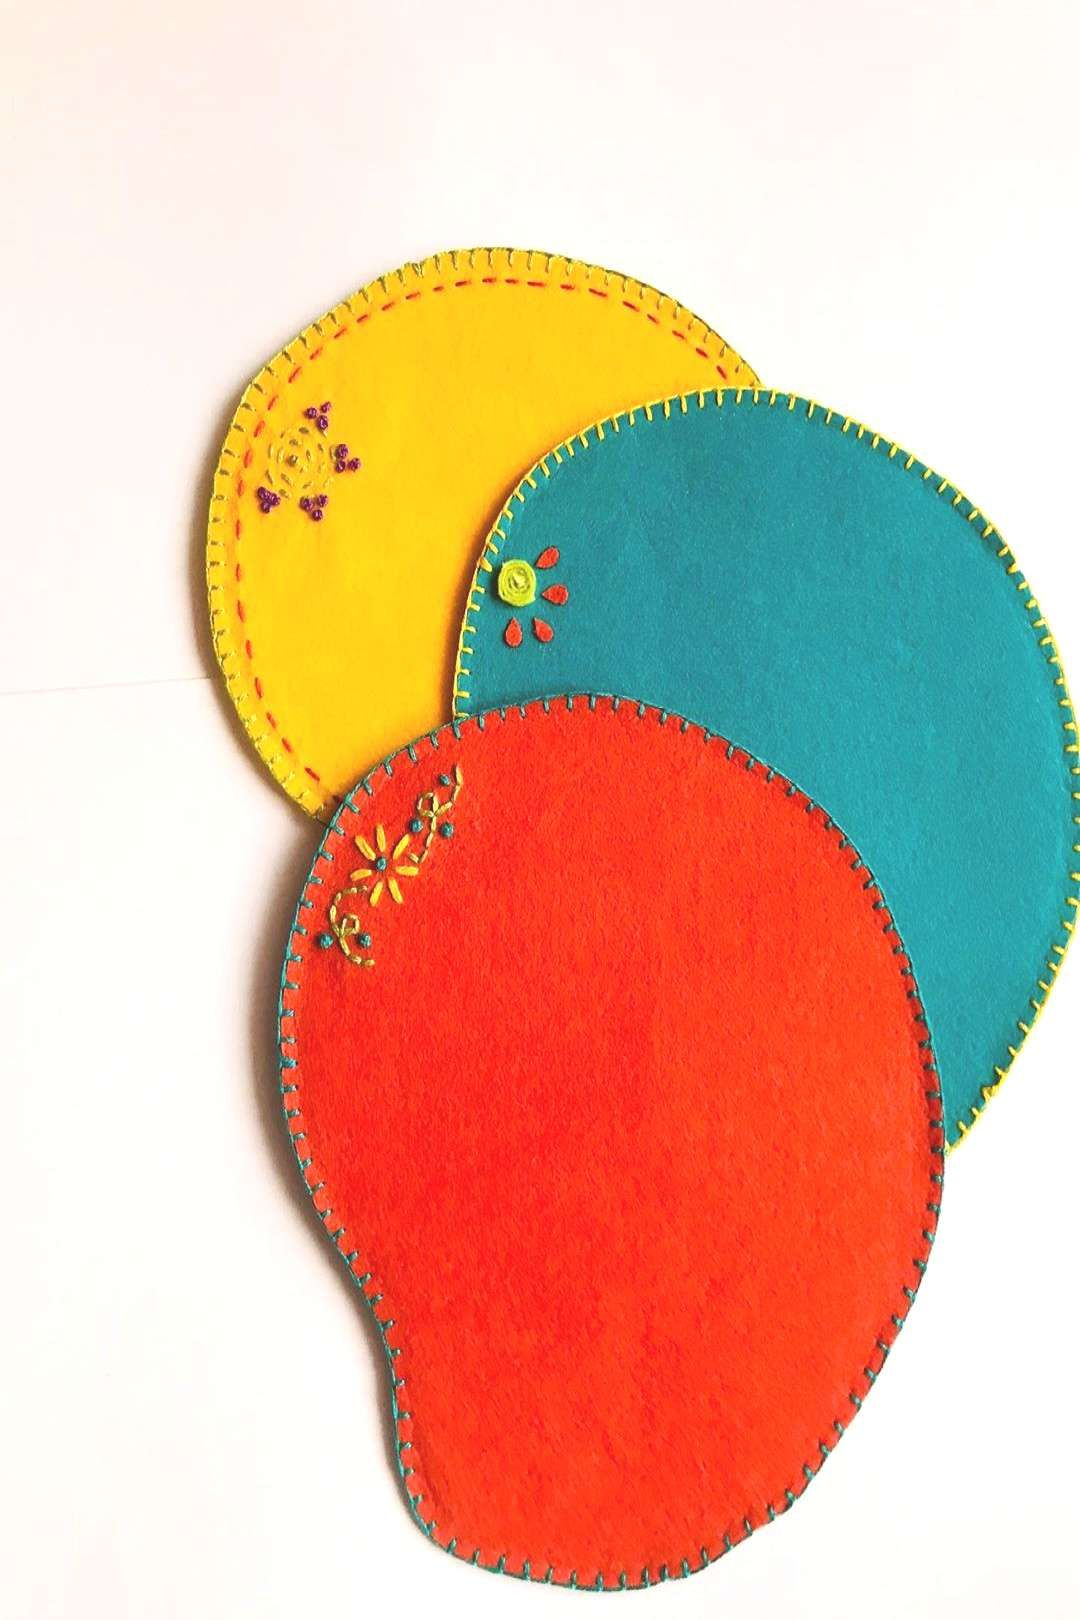 Tired of usual mouse pads Wanna try some funky ones to make yourYou can find Felt crafts and more on our we